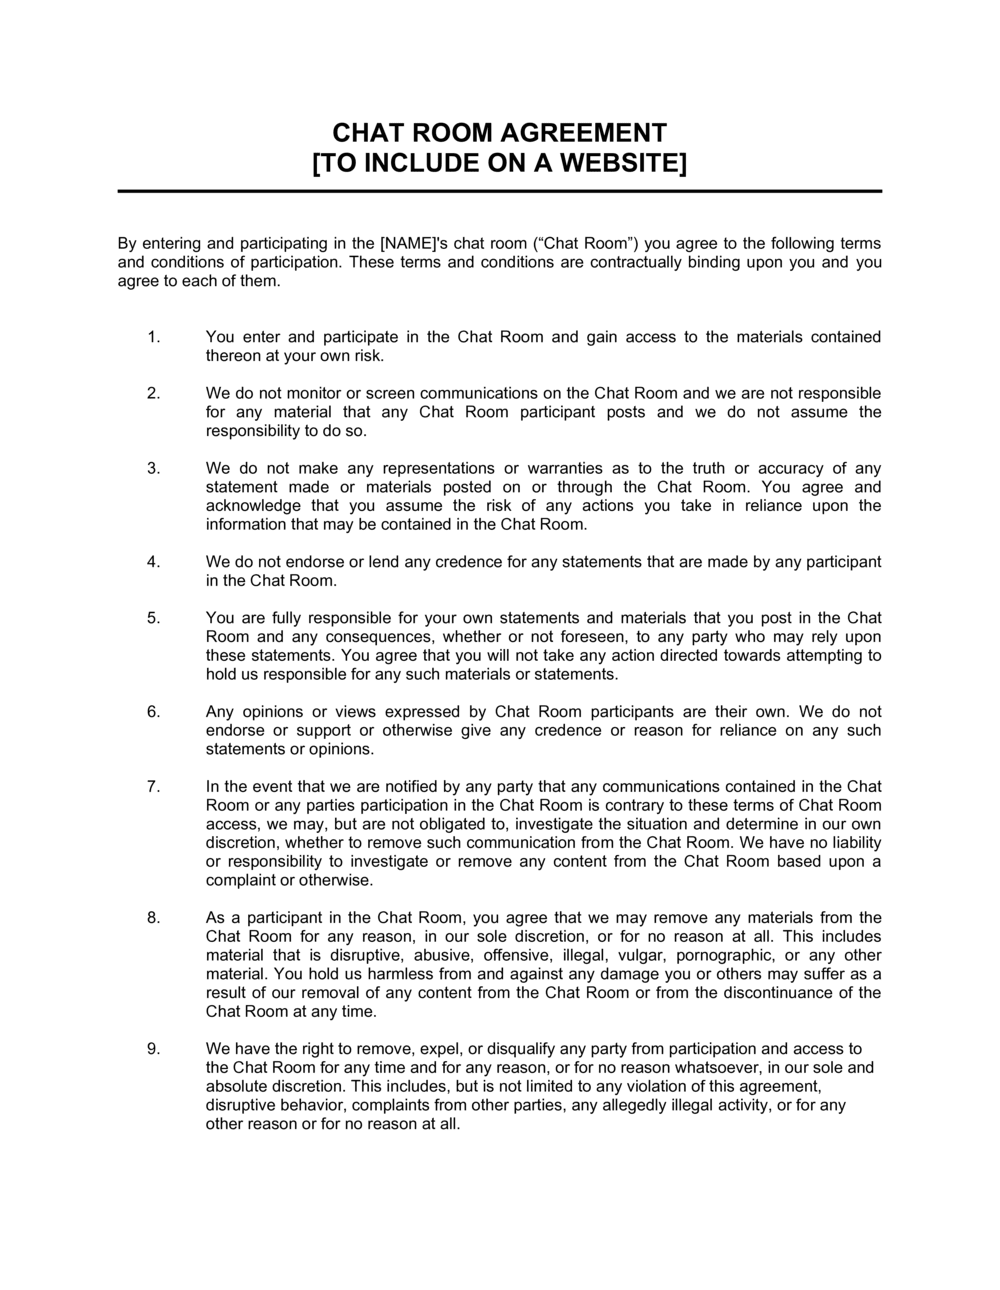 Business-in-a-Box's Chat Room Agreement Template